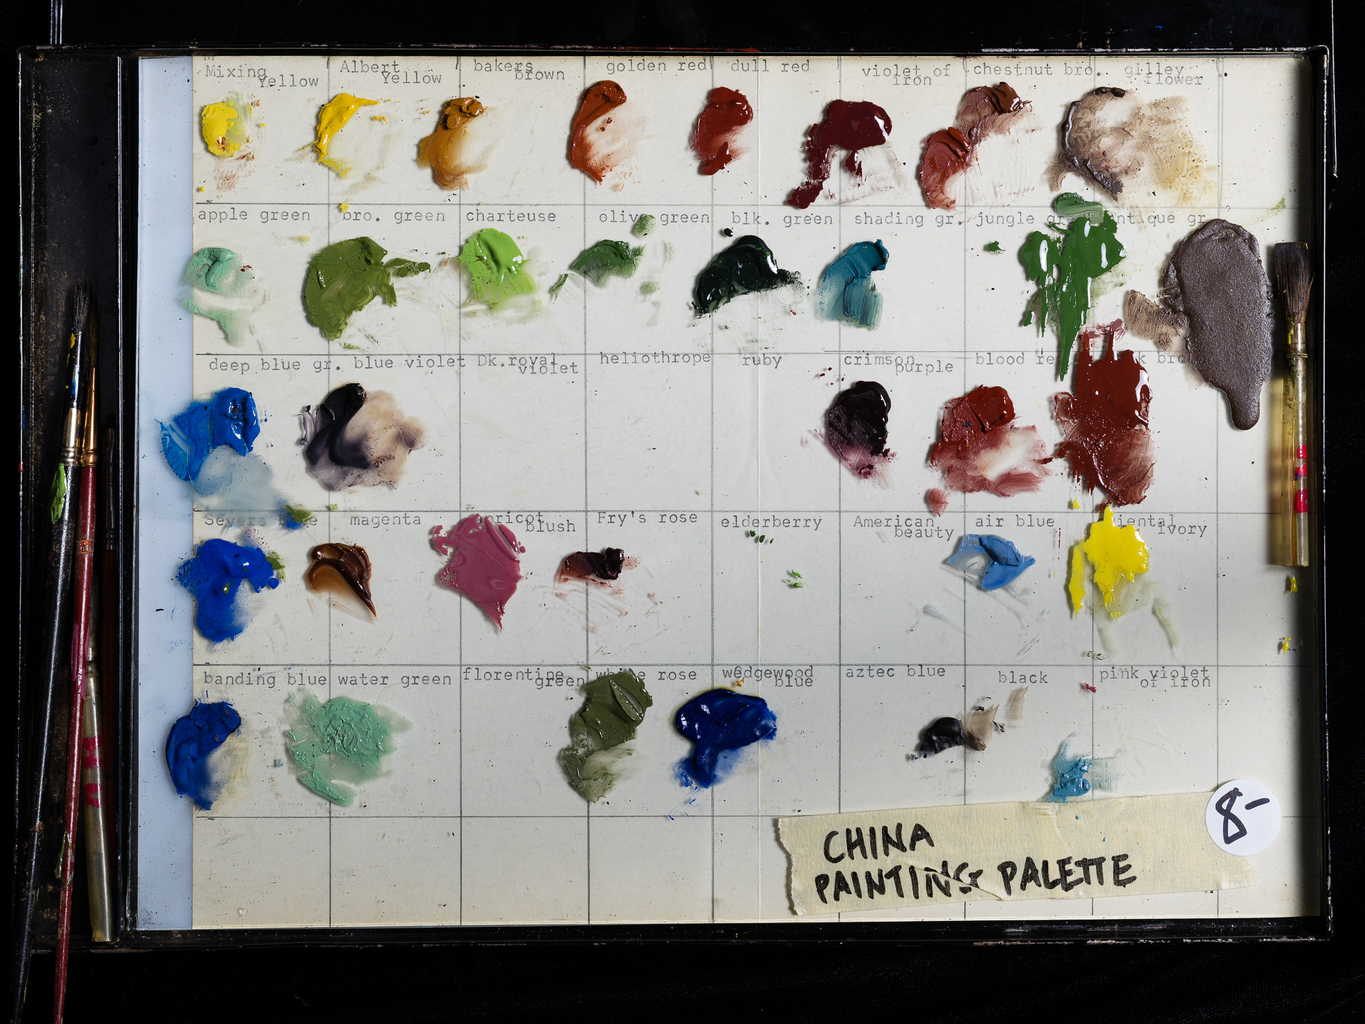 China Painting Palette